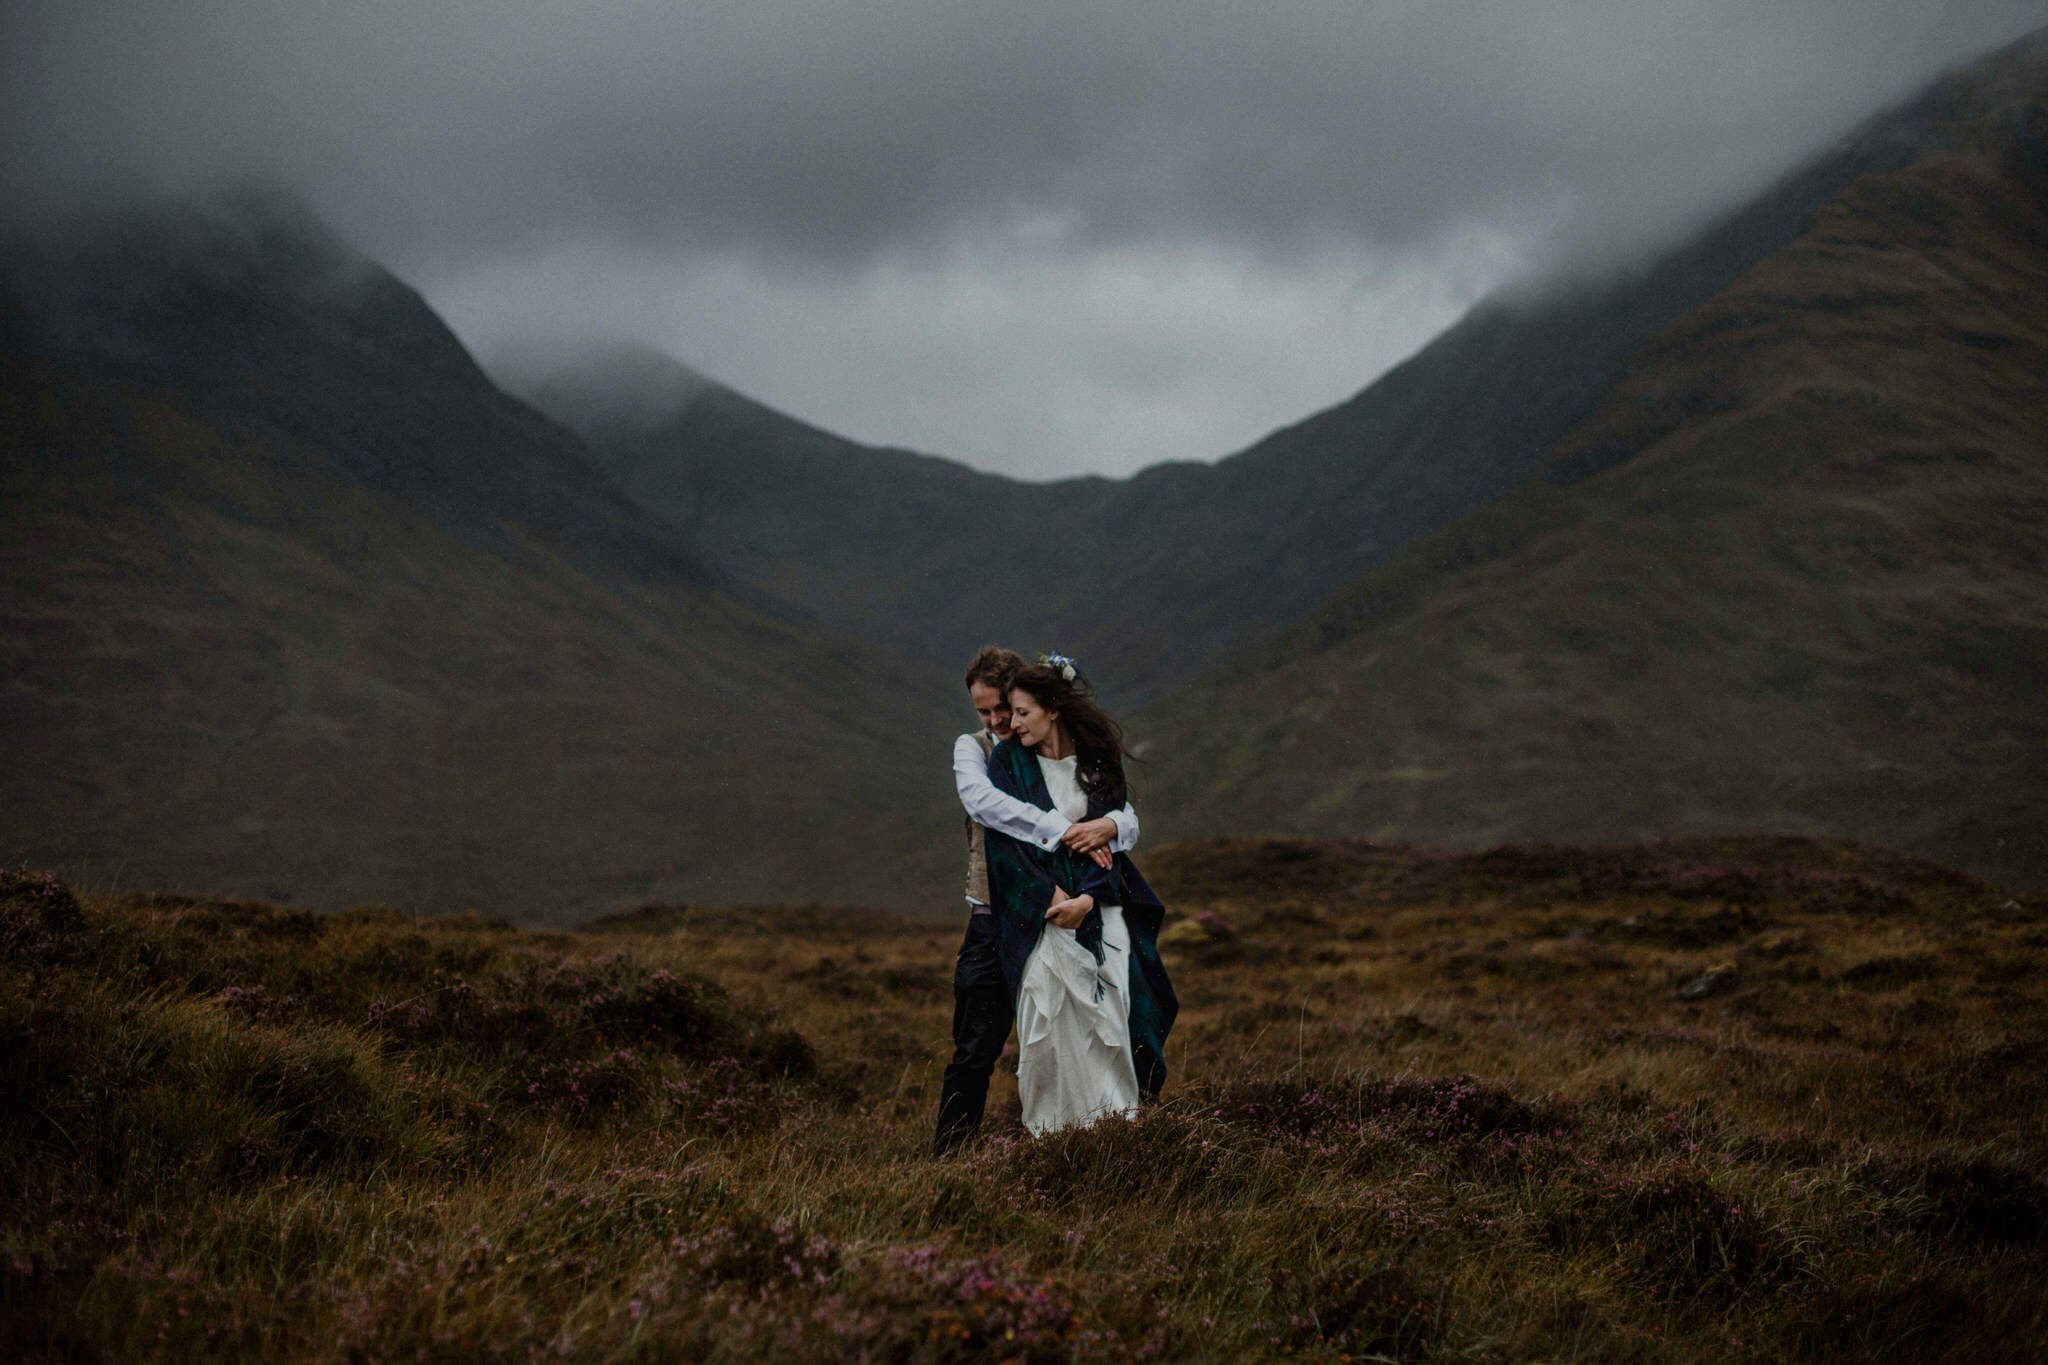 A warm embrace against the weather - husband and wife on the Isle of Skye